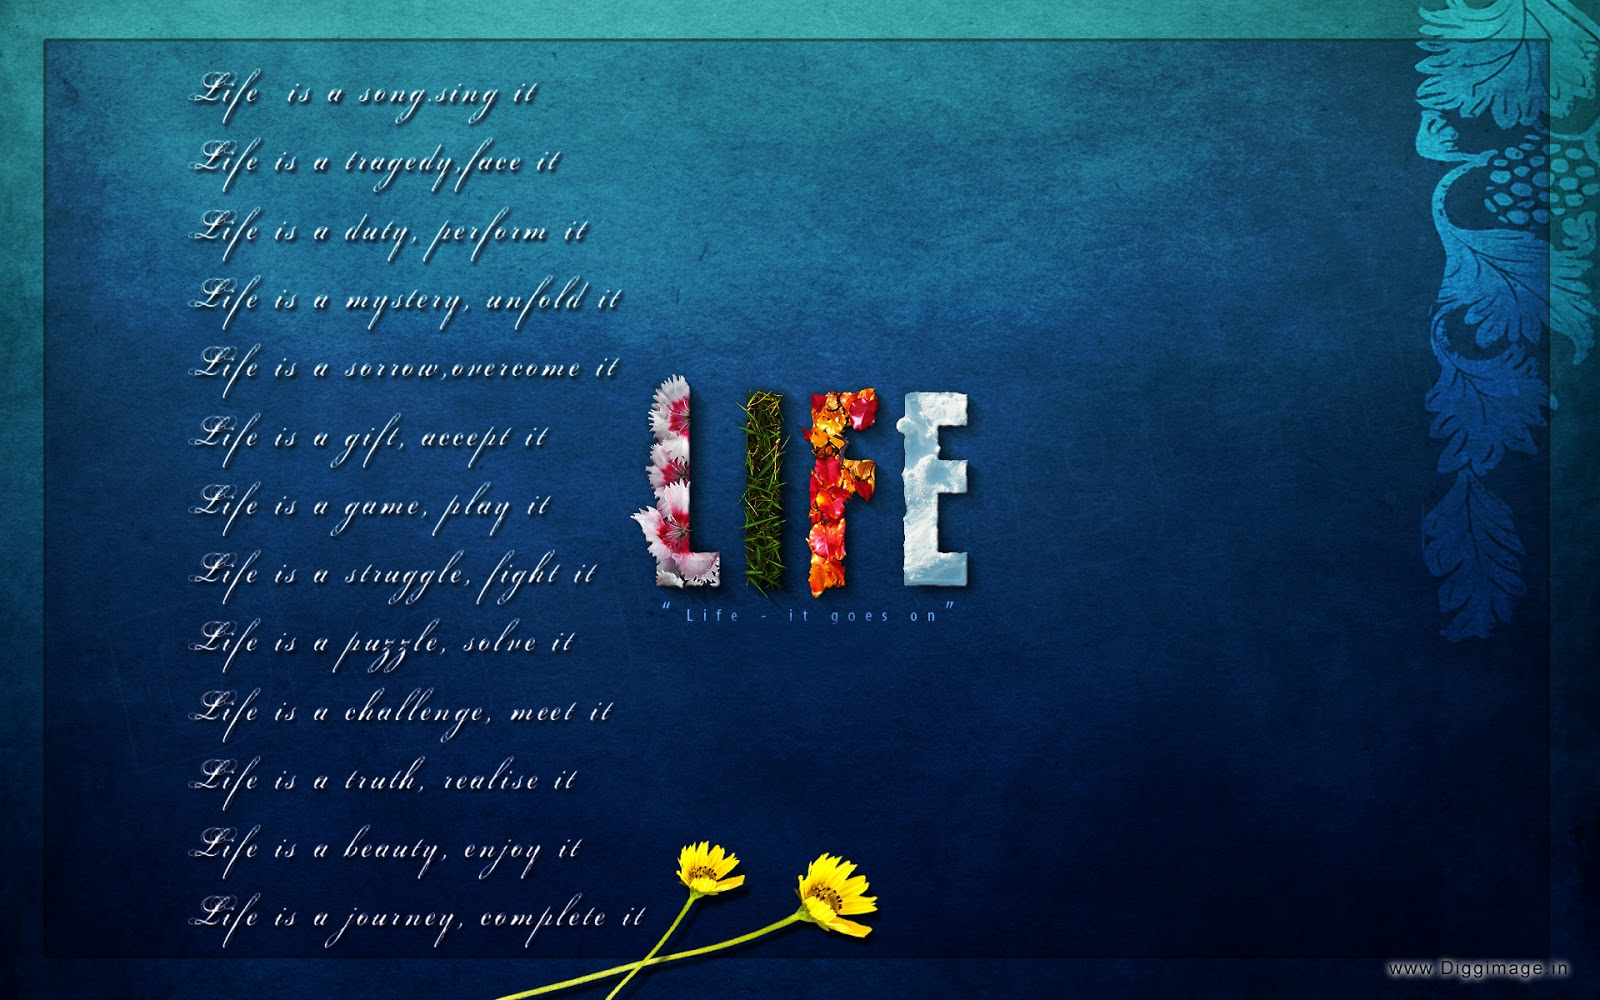 Wallpaper download life - Wallpapers With Inspirational Quotes Love Wallpapers With Quotes